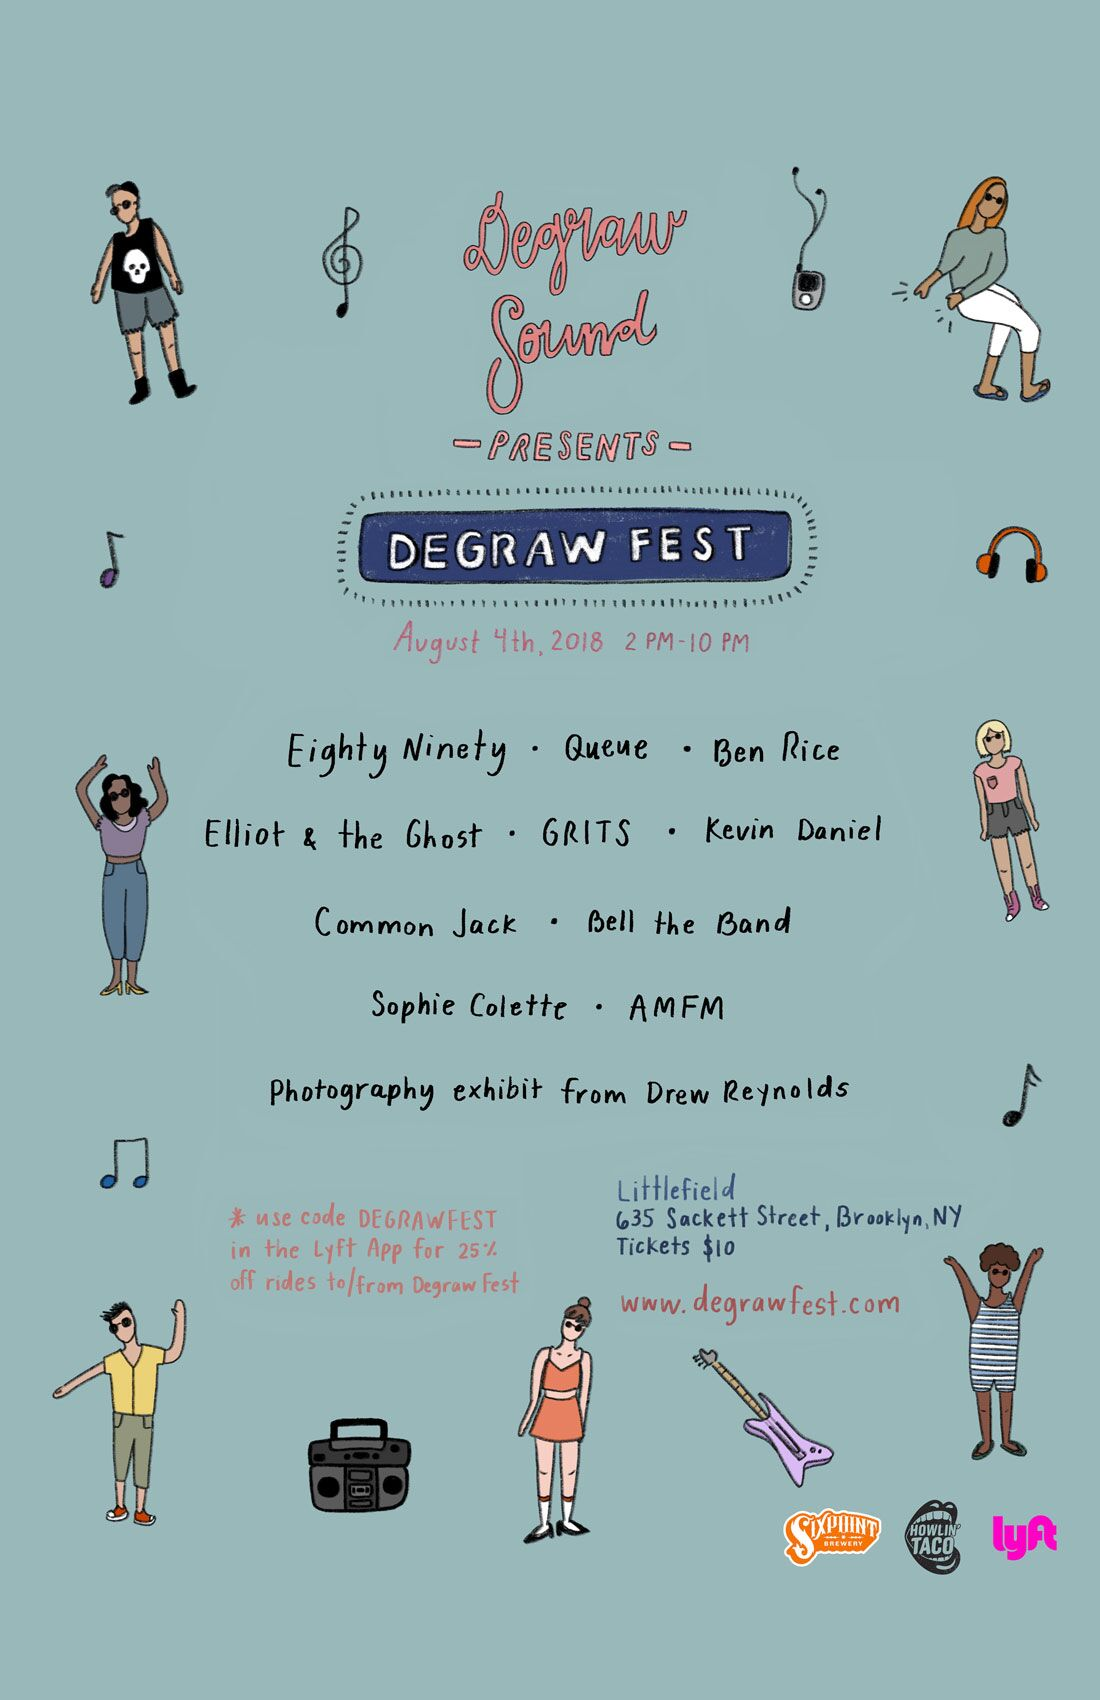 Degraw Fest lineup poster